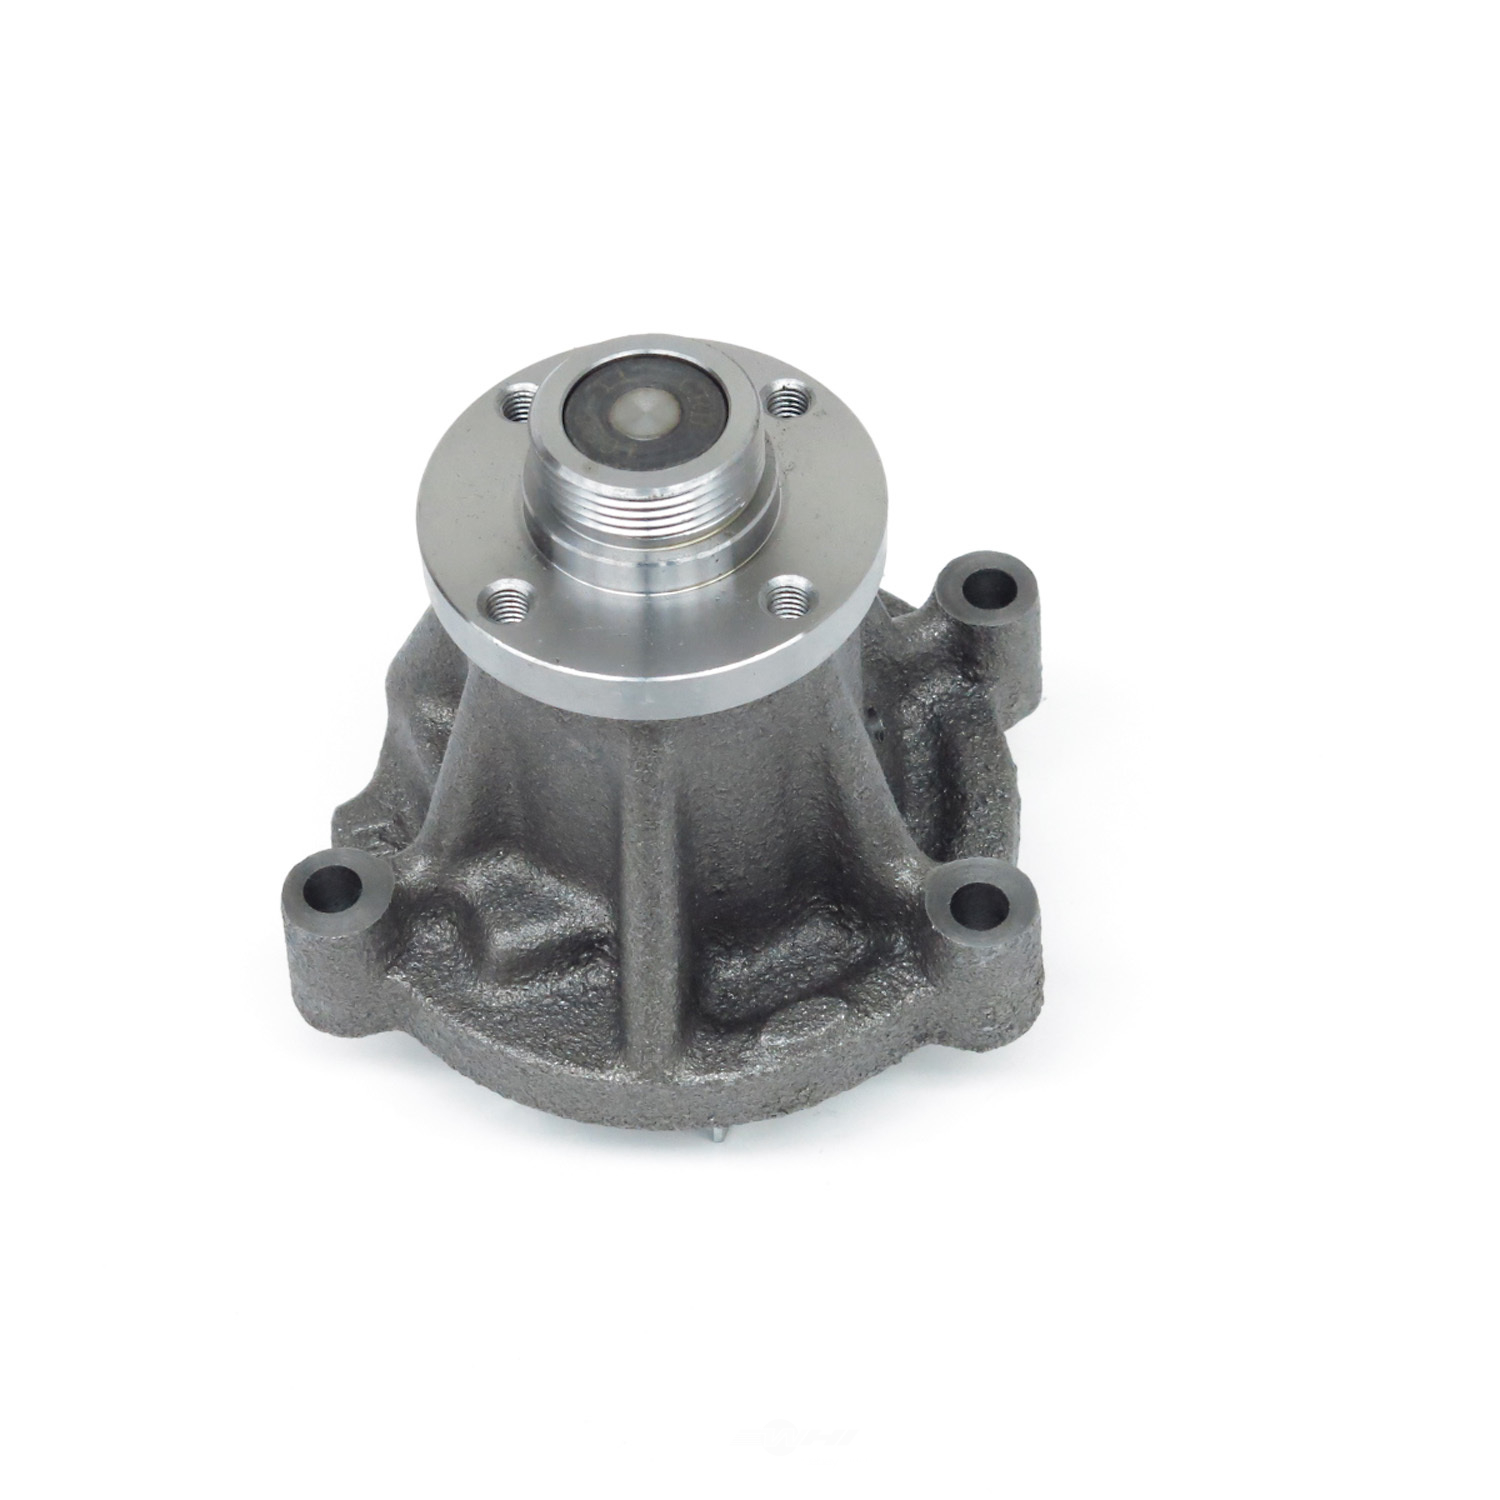 Engine water pump us motor works fits 99 09 ford f 350 for Water pump motor parts